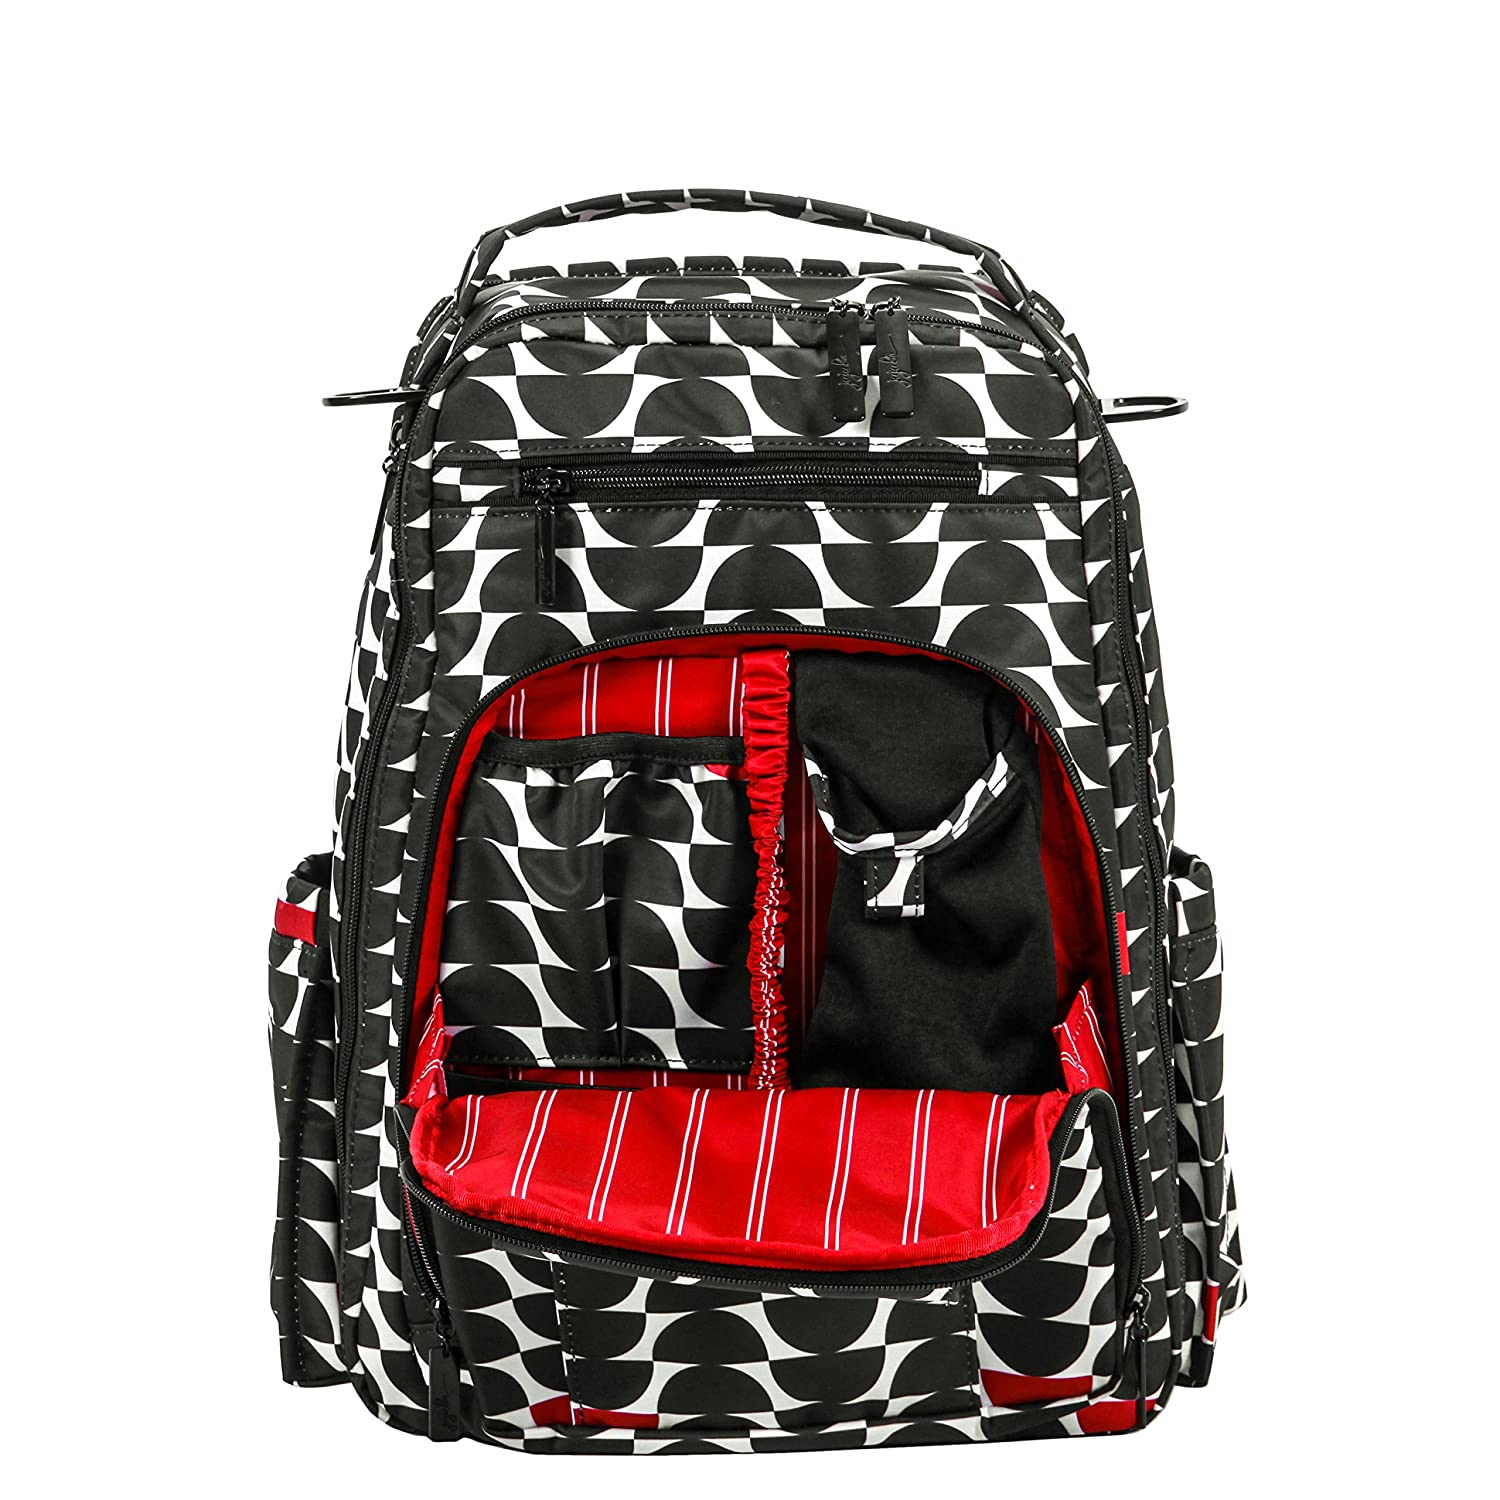 46c1cb5eda12 Amazon.com   Ju-Ju-Be Onyx Collection Be Right Back Backpack Diaper ...